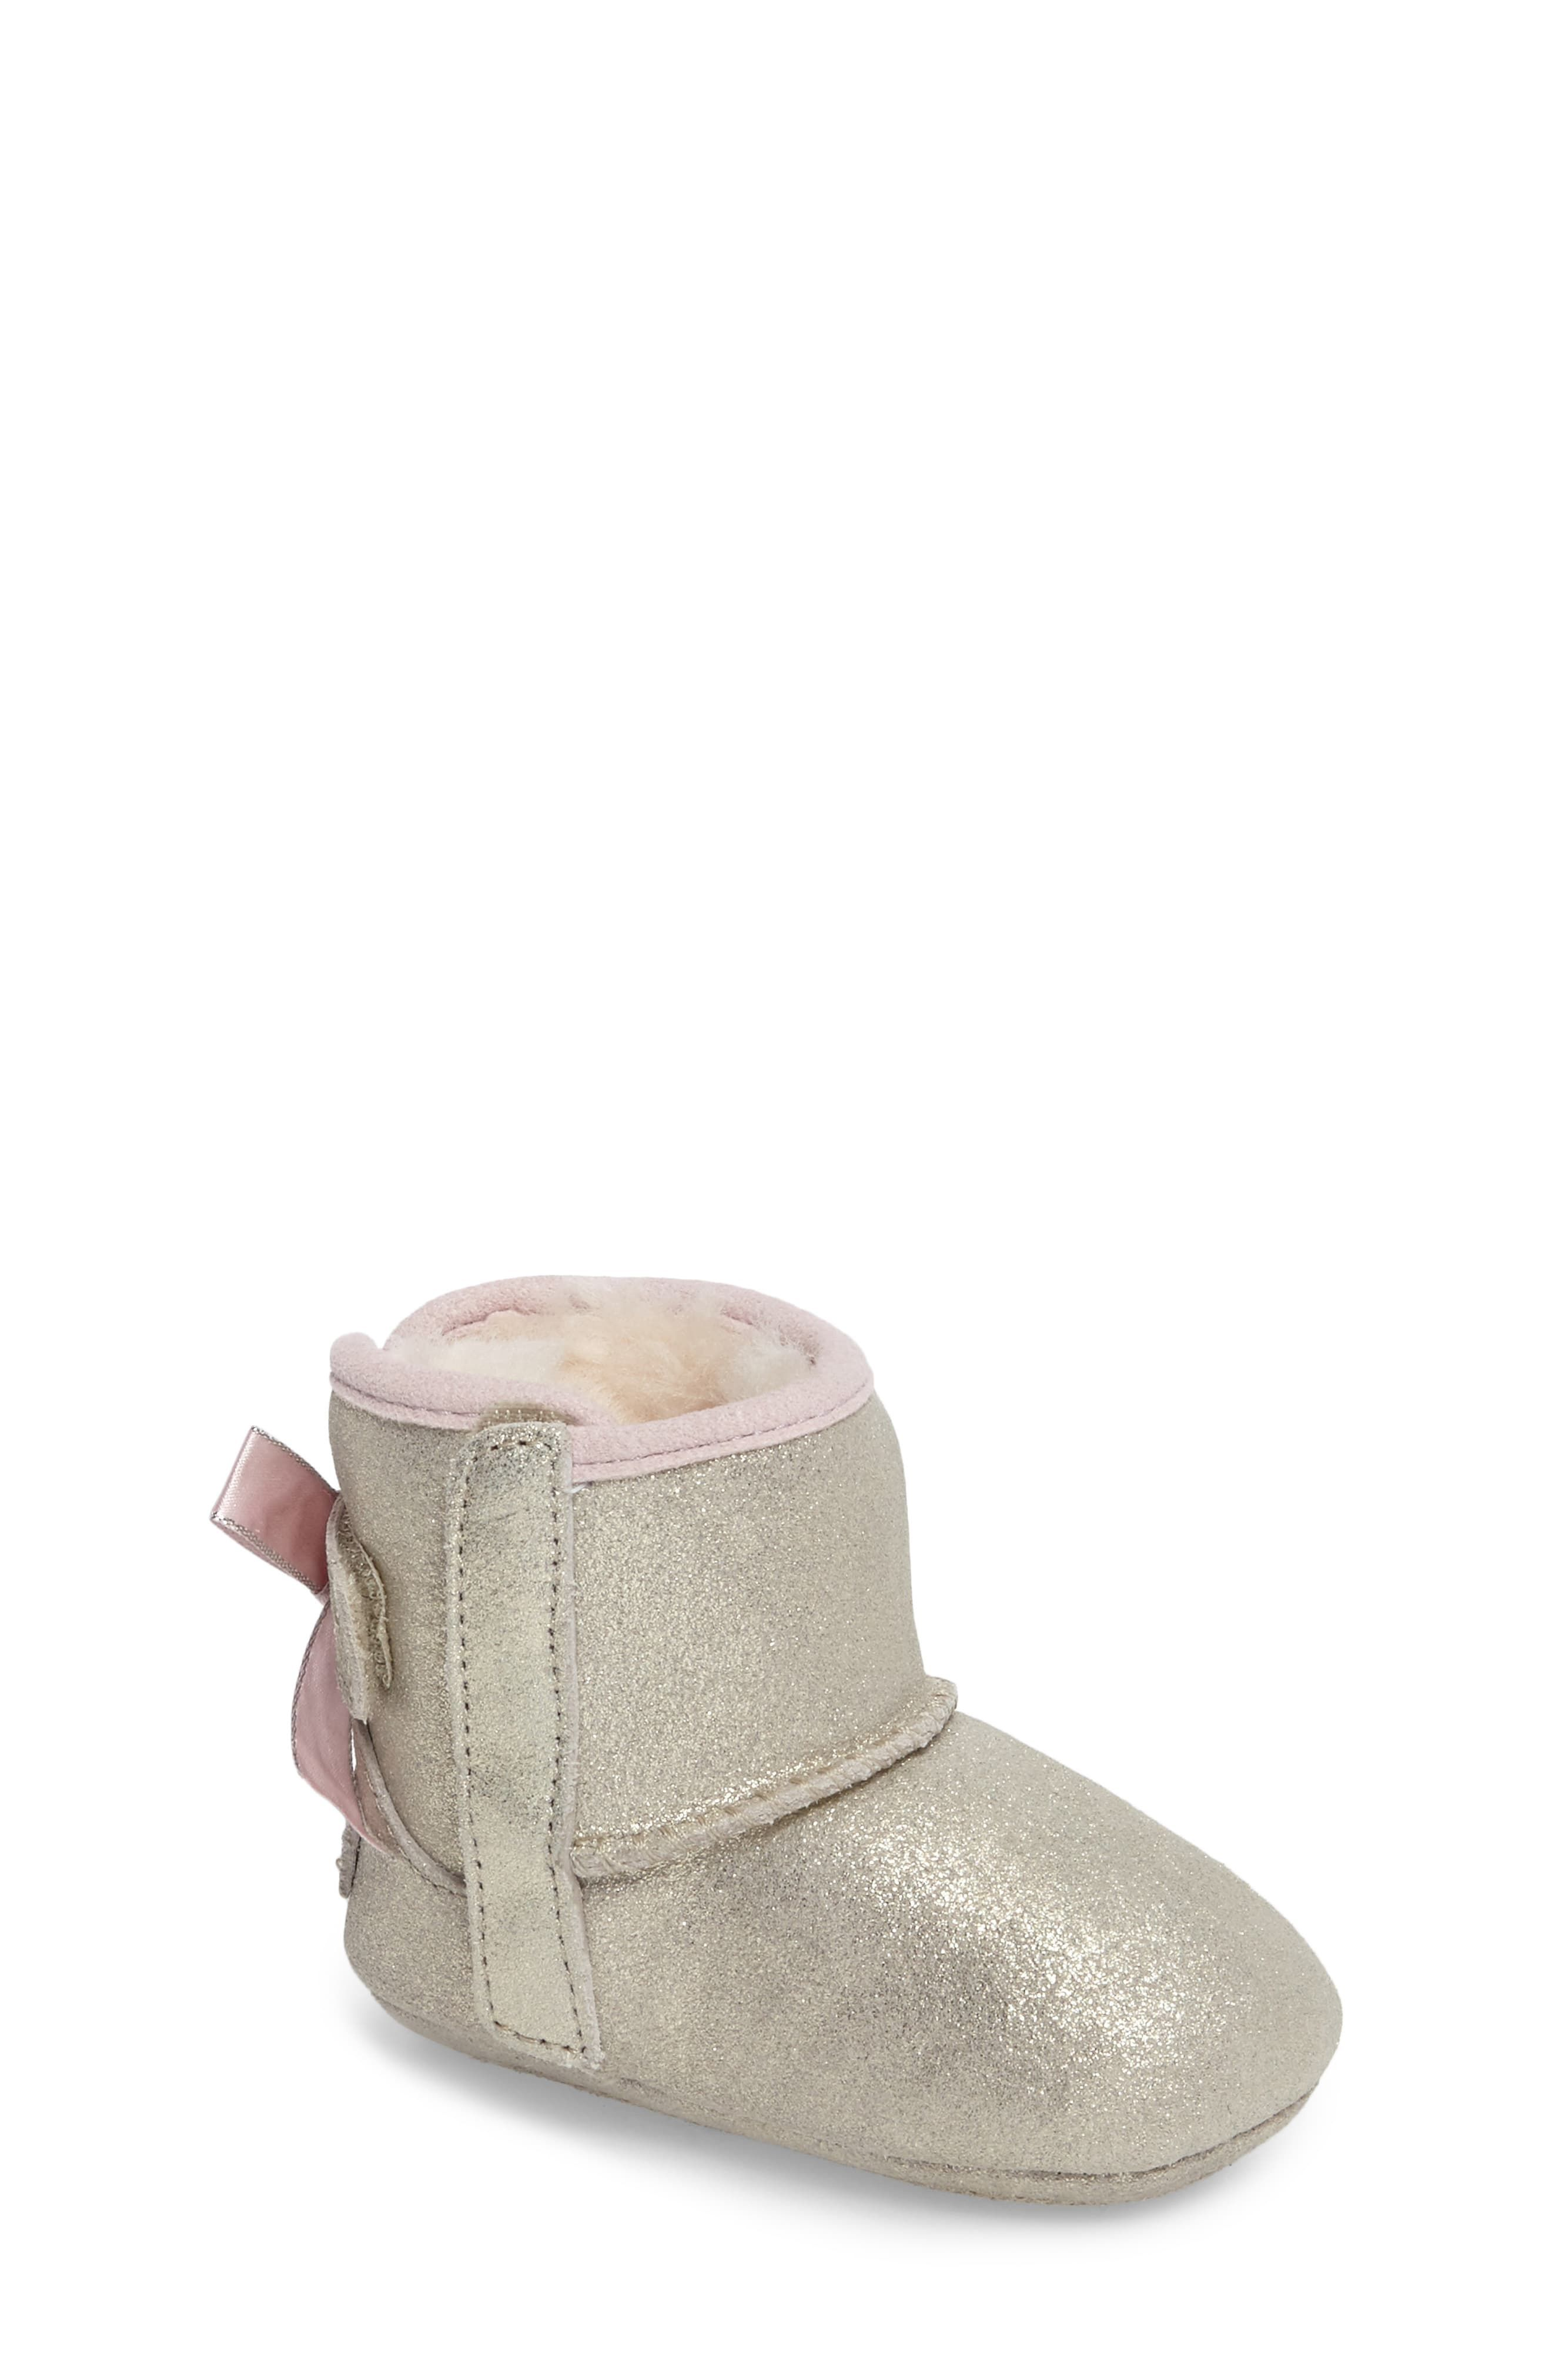 84ebb0a0a1e Infant Girl's Ugg Jesse Bow Ii Metallic Bootie, Size 0/1 M ...